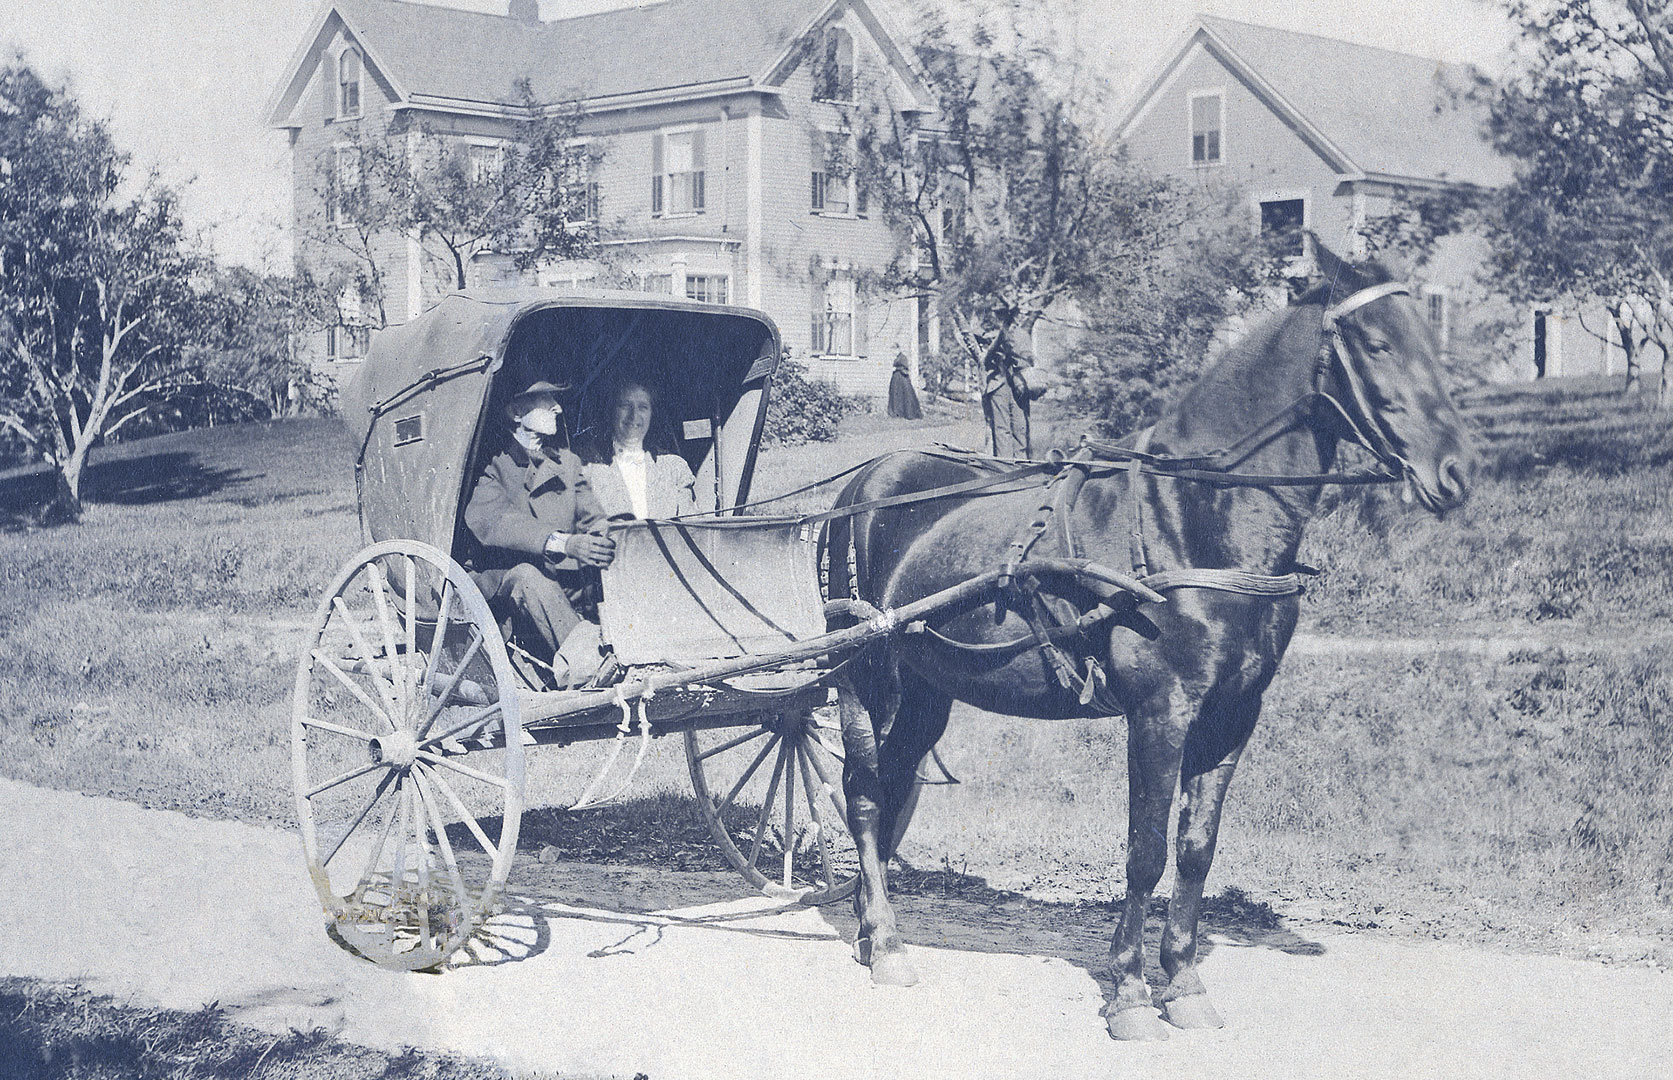 Alonzo Garcelon, seen here with his daughter on East Avenue in Lewiston, drove his one-horse shay to appointments all around town. Photograph courtesy Edmund S. Muskie Archives and Special Collections Library